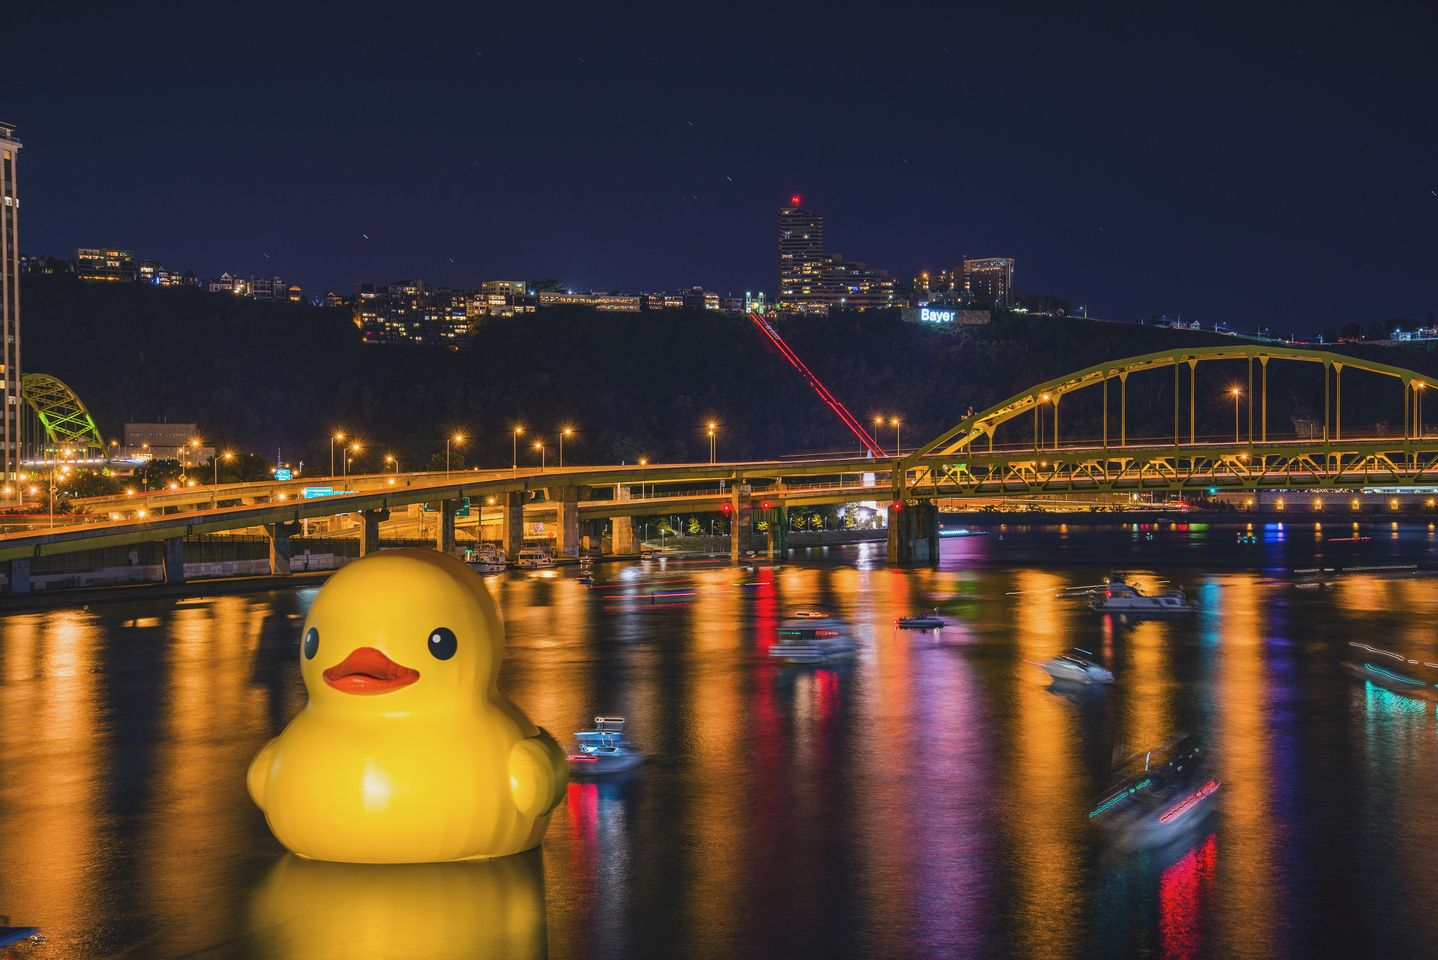 Giant Rubber Duck In Pittsburgh Giant Duck On The Allegheny River In Pittsburgh At Night Hdr Pittsburgh Visit Pittsburgh Pittsburgh Skyline